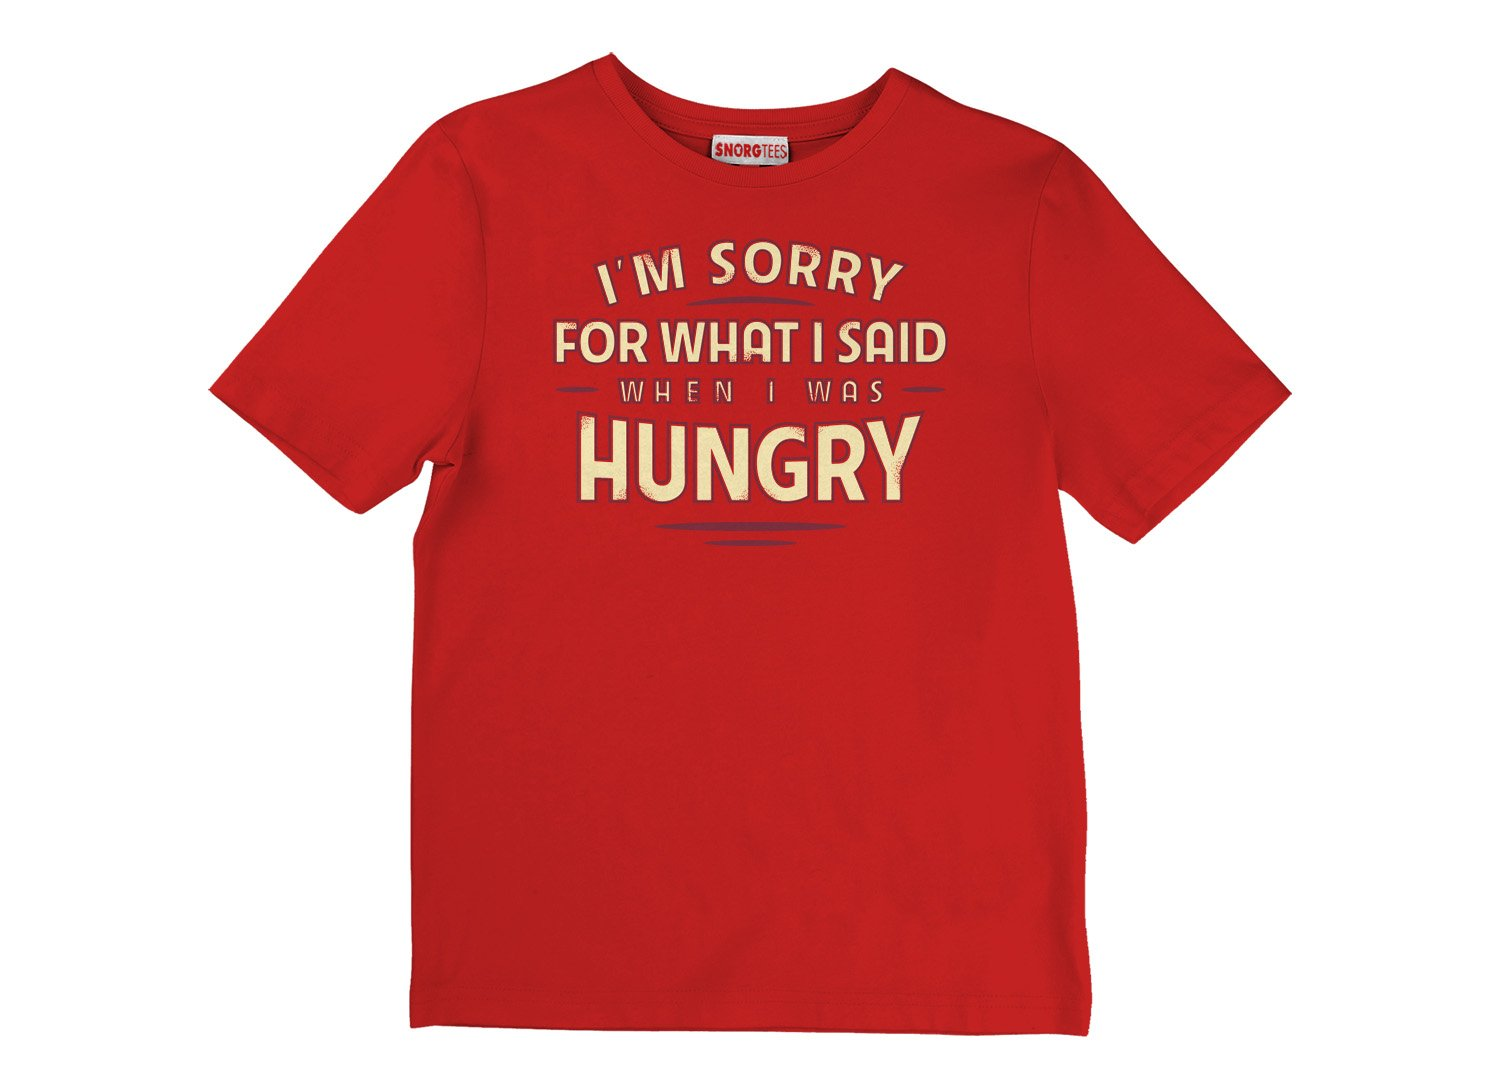 What I Said When I Was Hungry on Kids T-Shirt